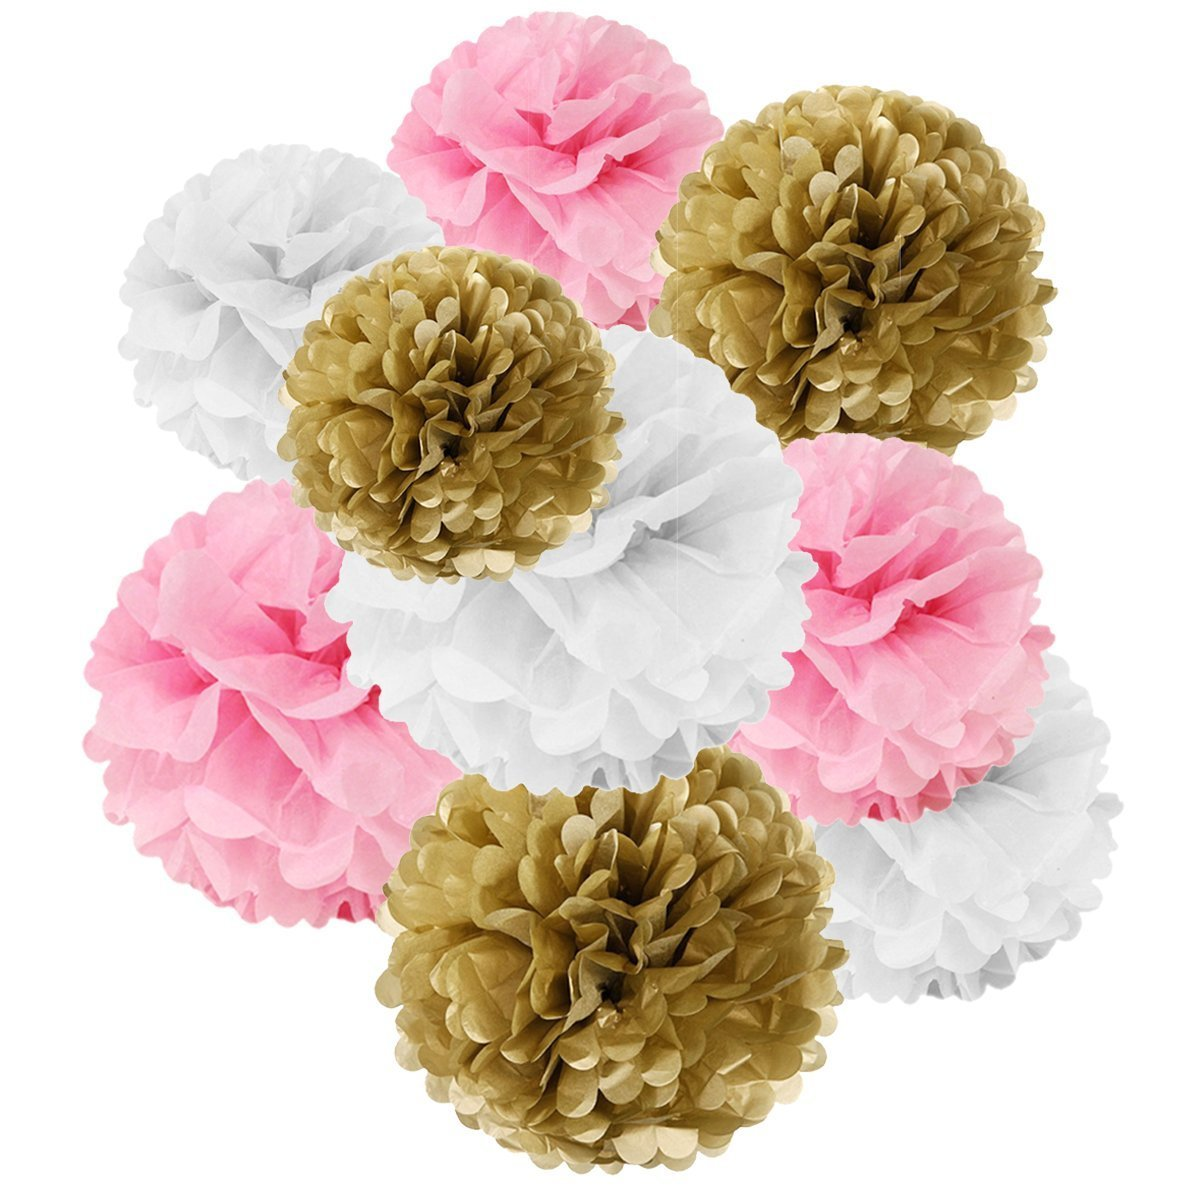 Wrapables® Set of 18 Tissue Pom Pom Party Decorations for Weddings, Birthday Parties Baby Showers and Nursery Decor, Pink/ Gold/ White